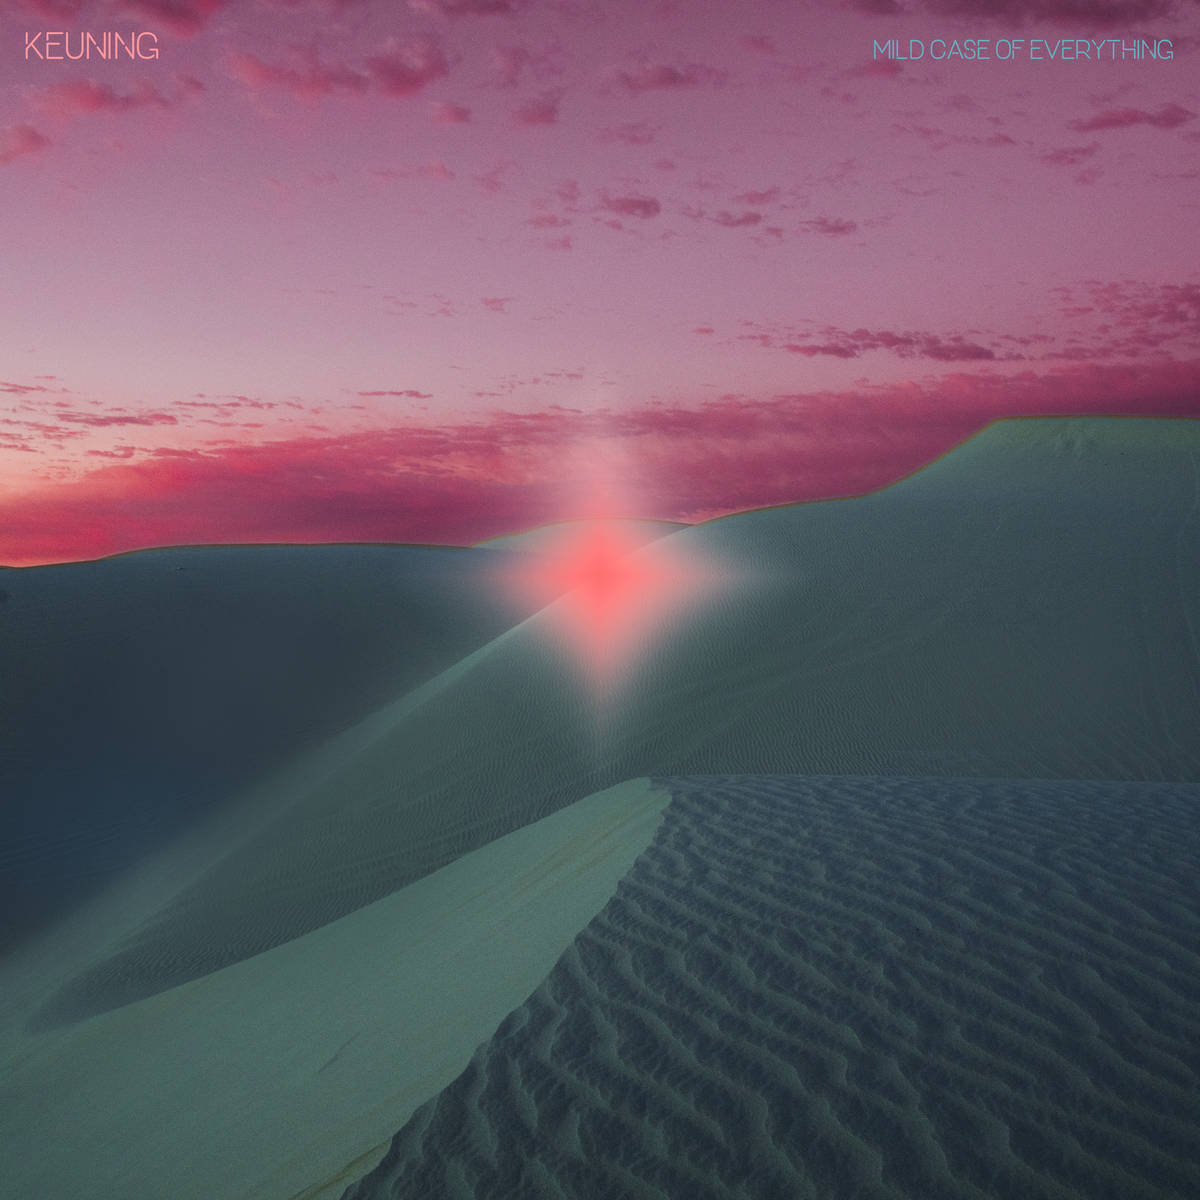 """Dave Keuning's second solo album, """"A Mild Case of Everything,"""" comes out on June 25. (Beac ..."""